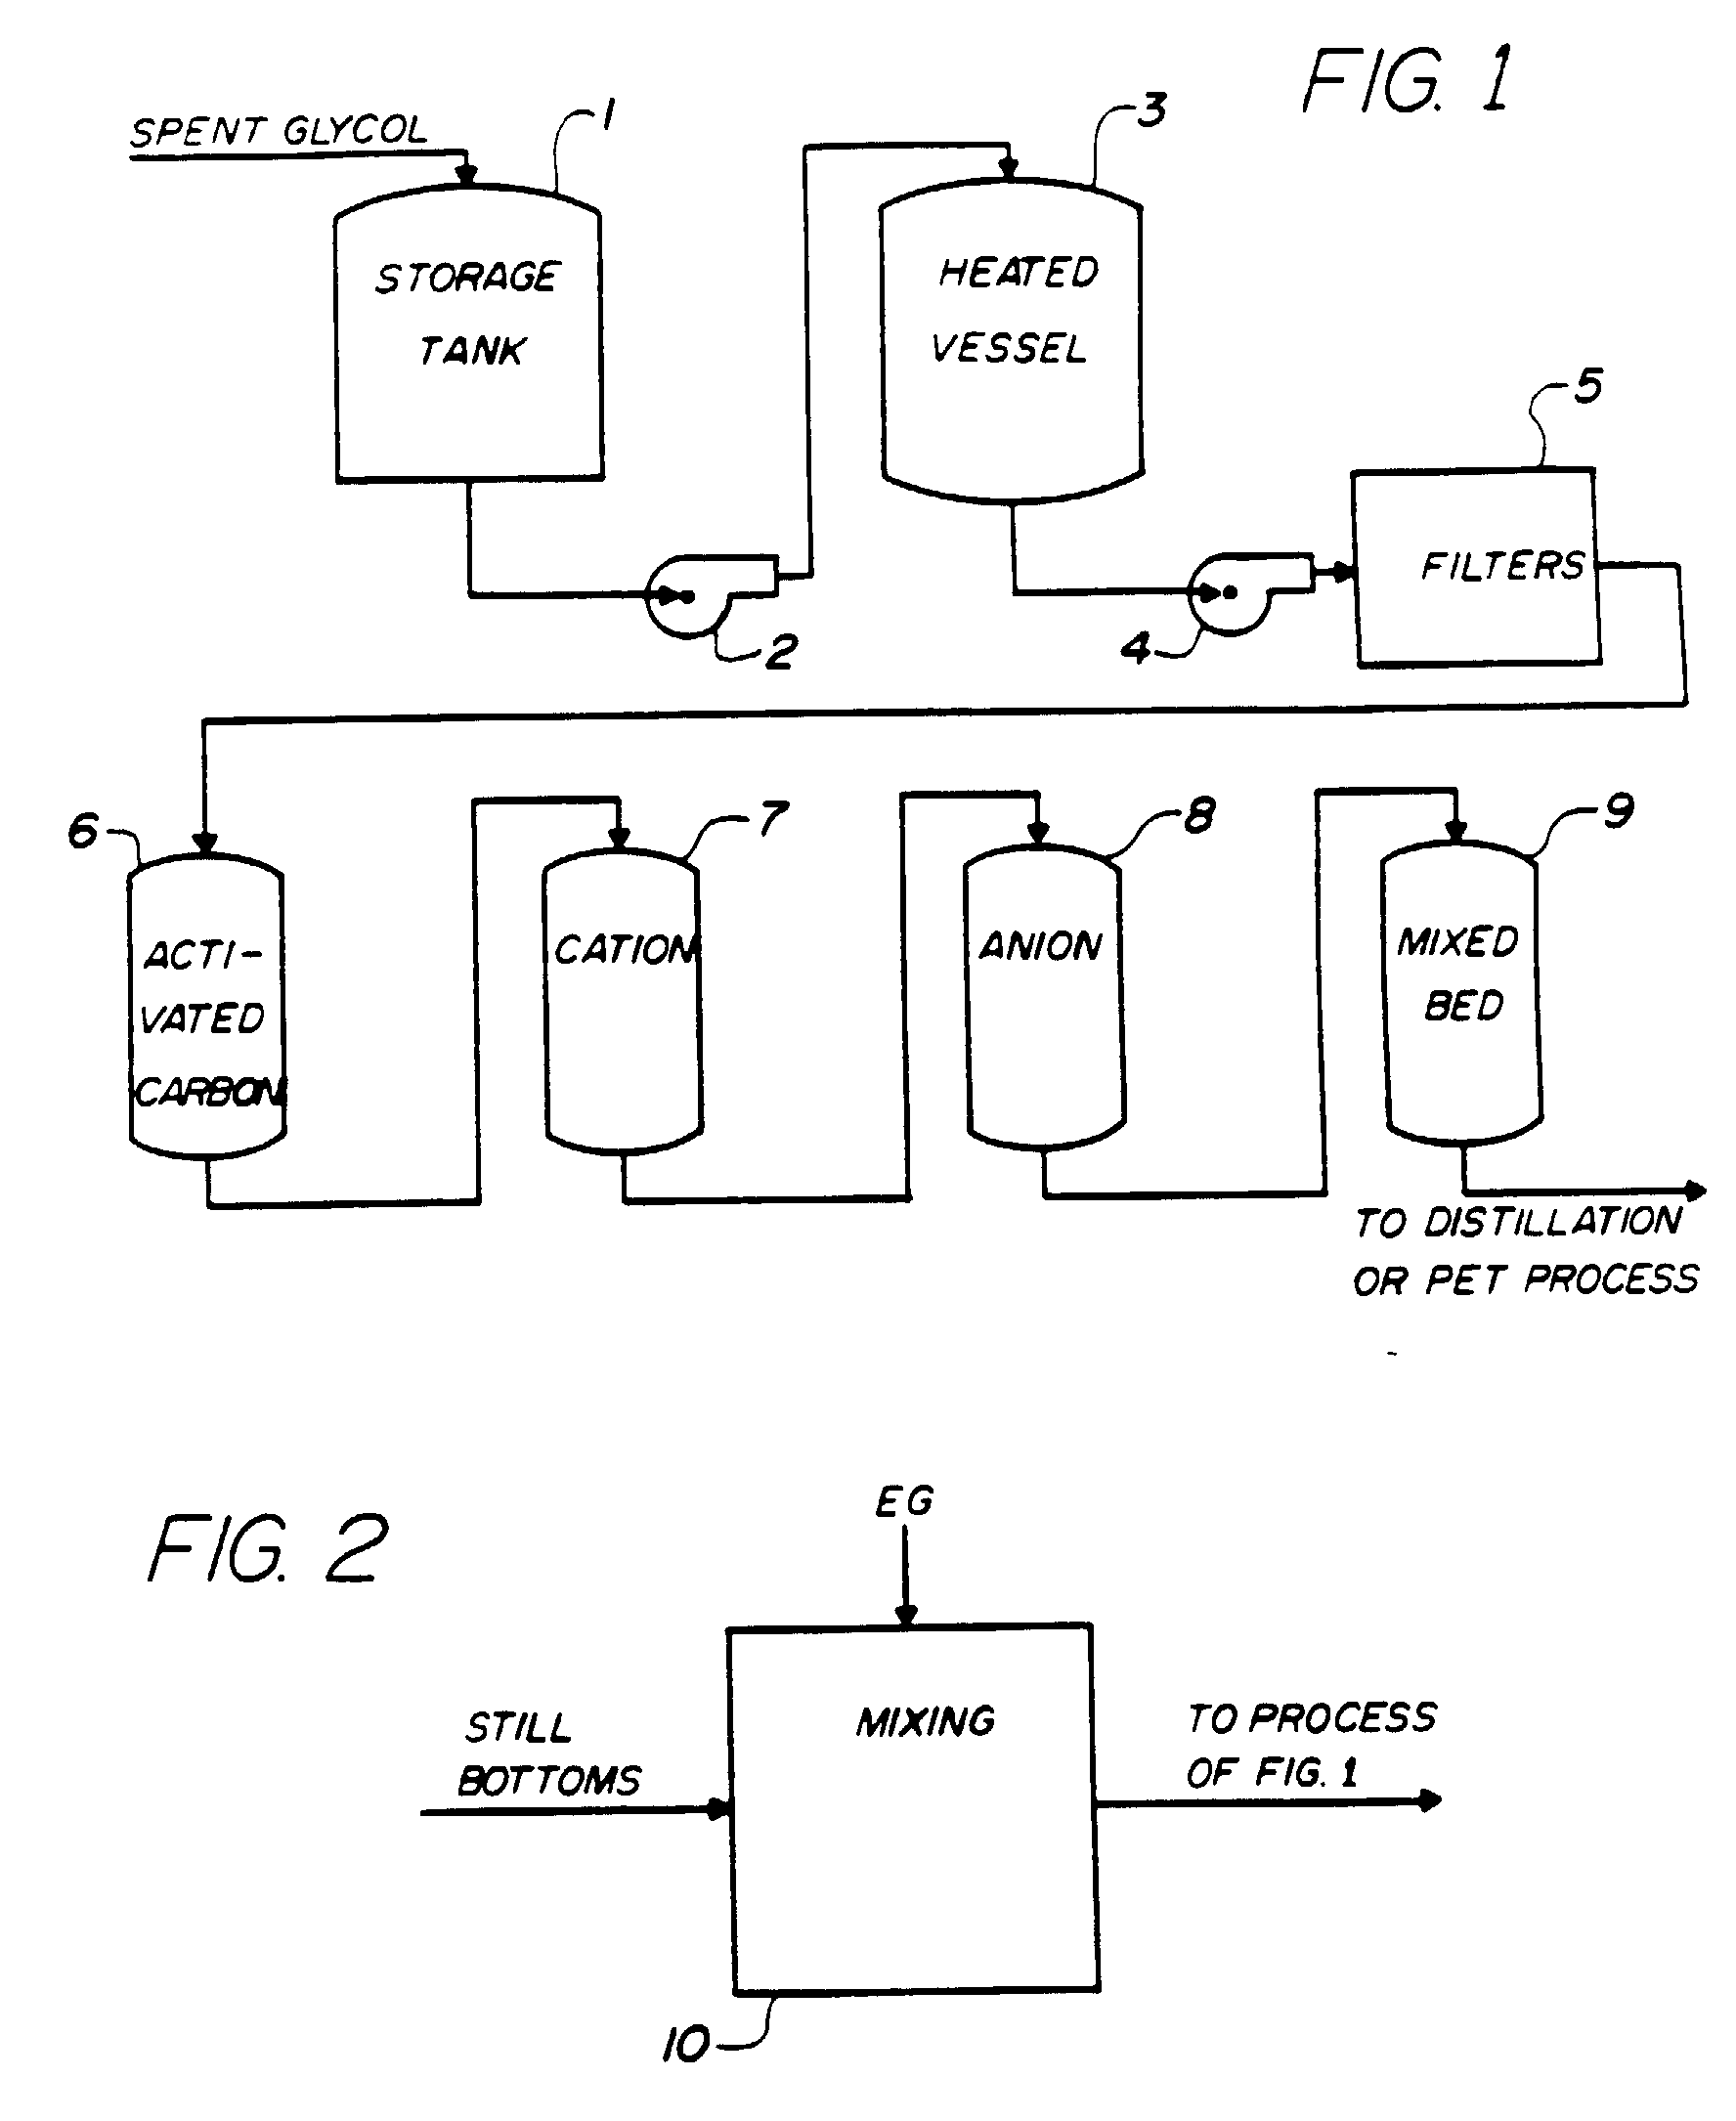 styrene production process flow diagram samsung electric dryer wiring patent ep0696268b1 ethylene glycol recovery